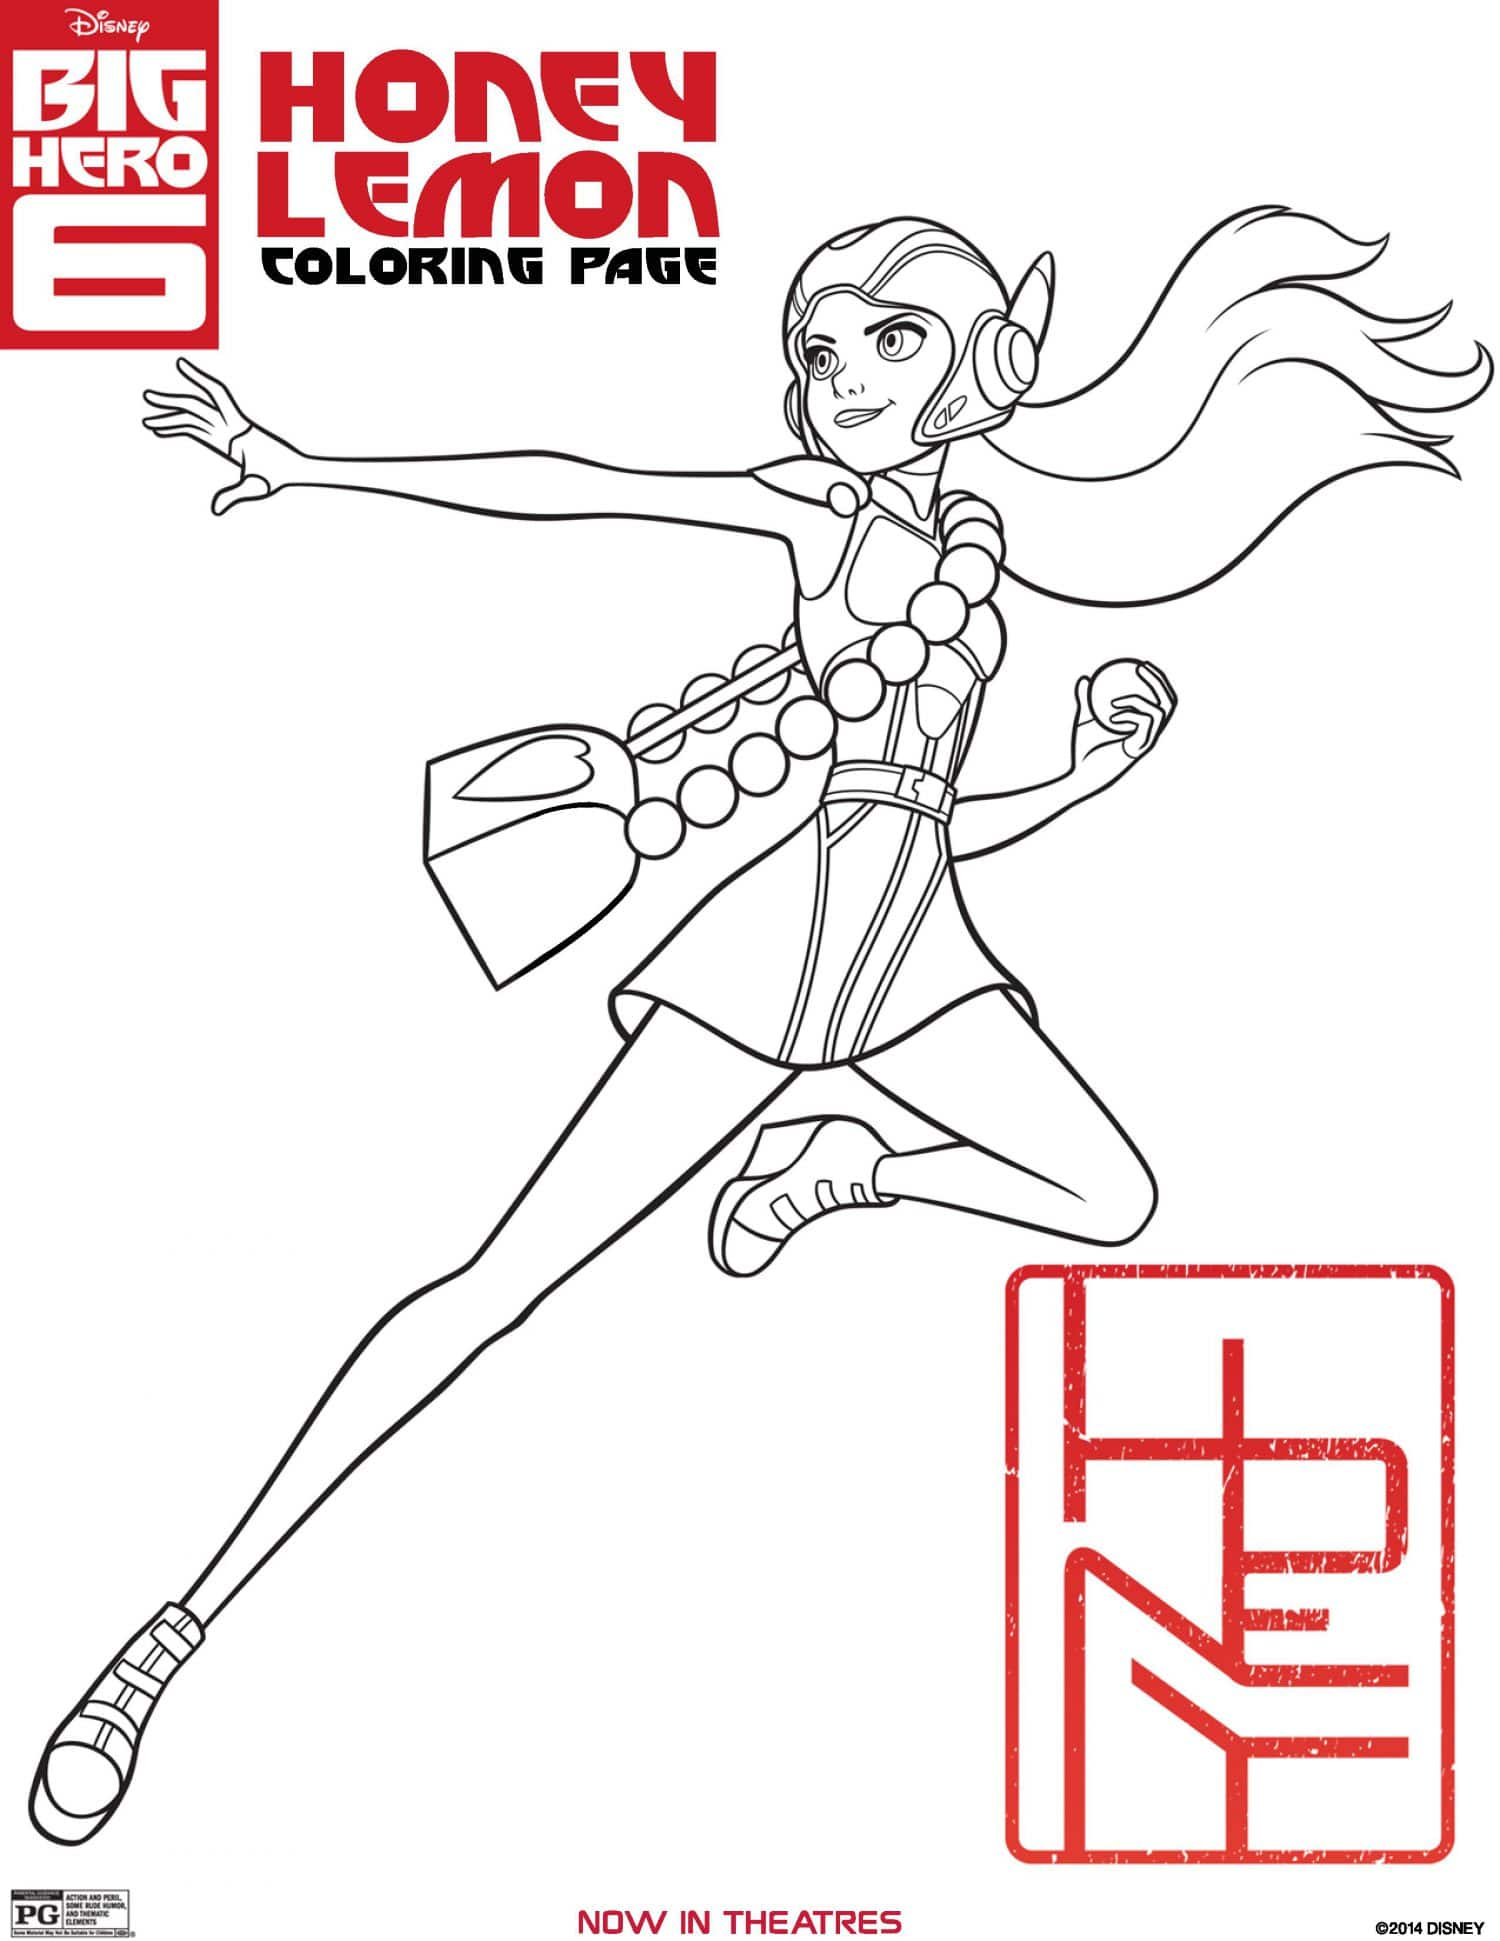 Big Hero 6 Coloring Page Honey Lemon